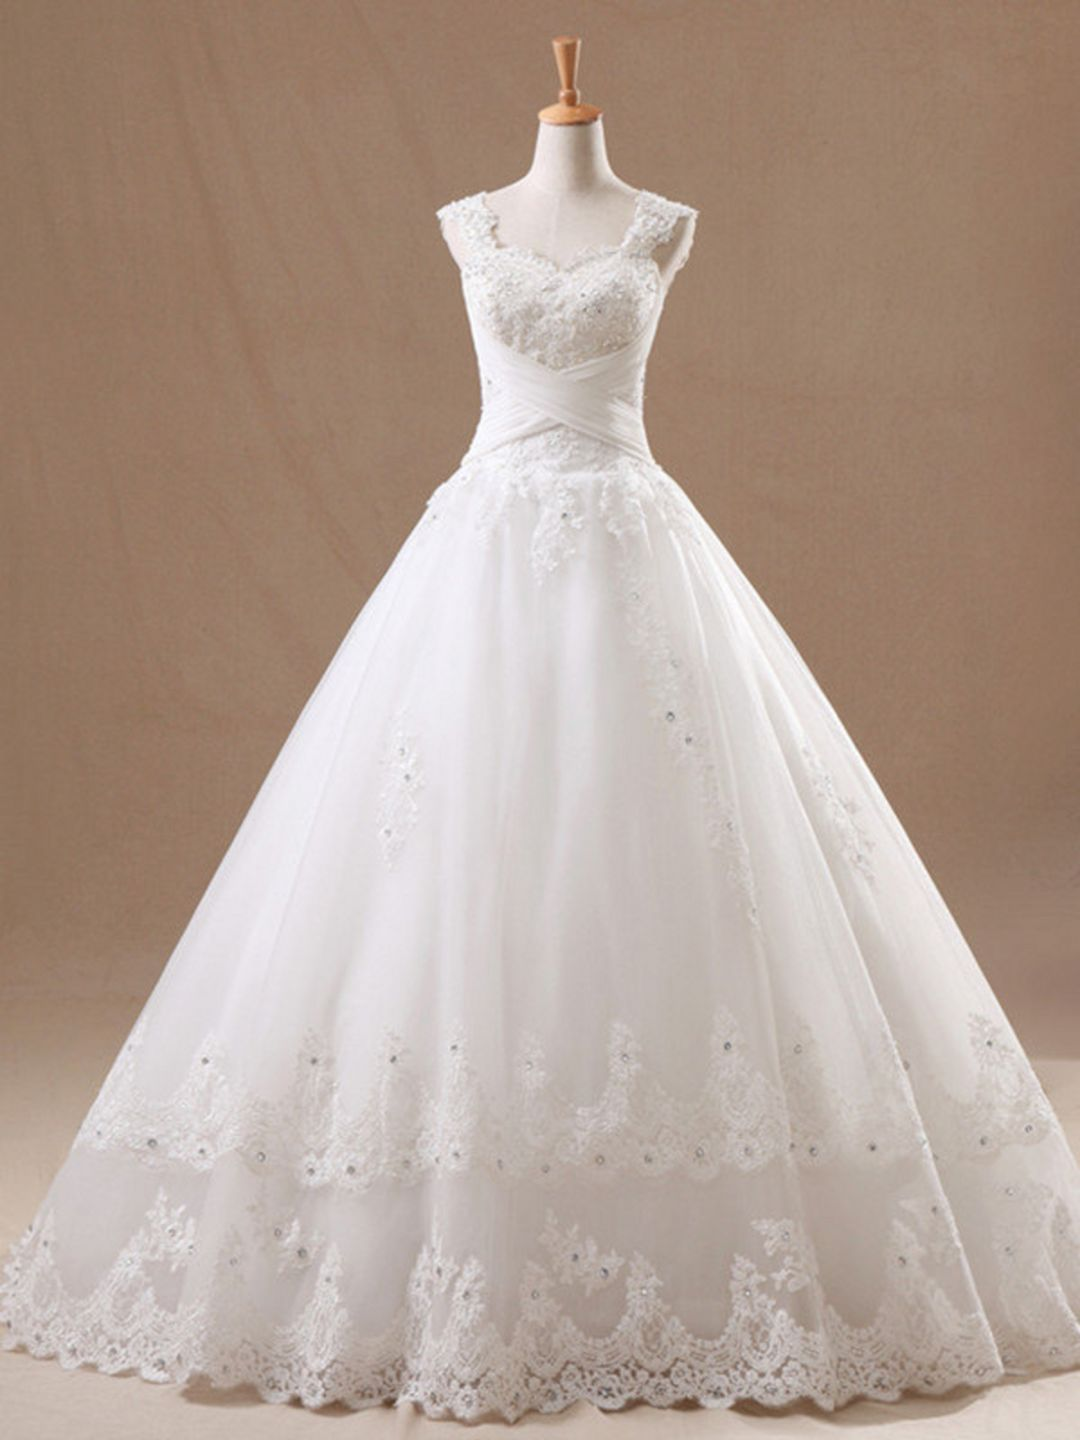 8e4b64a0b0 Gloomy 25+ Most Wonderful Wedding Ball Gown with Cathedral Trains Ideas  https